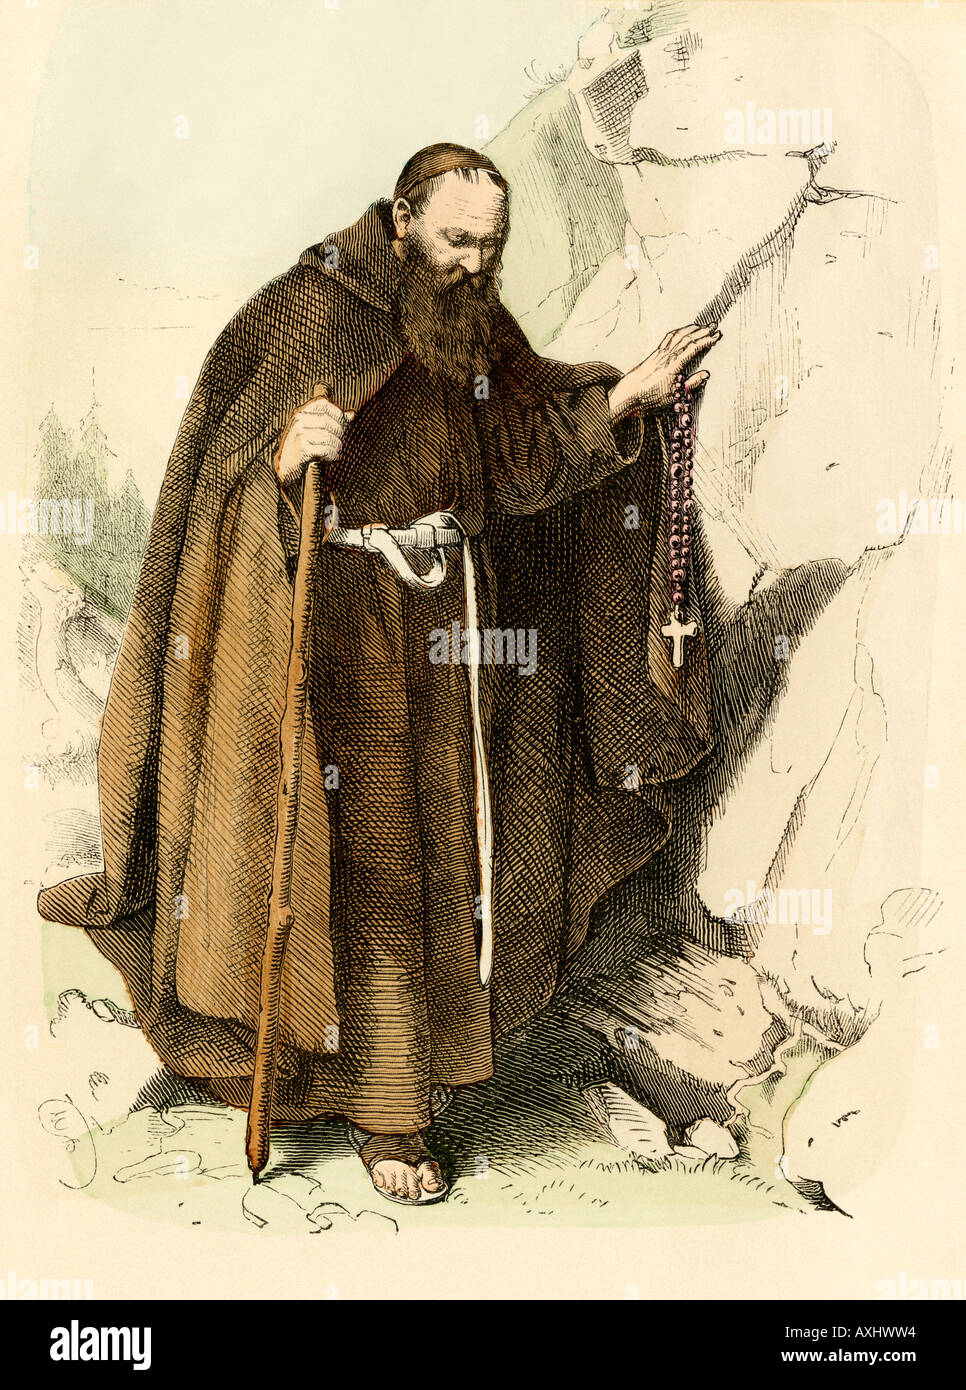 Medieval hermit monk. Hand-colored print - Stock Image